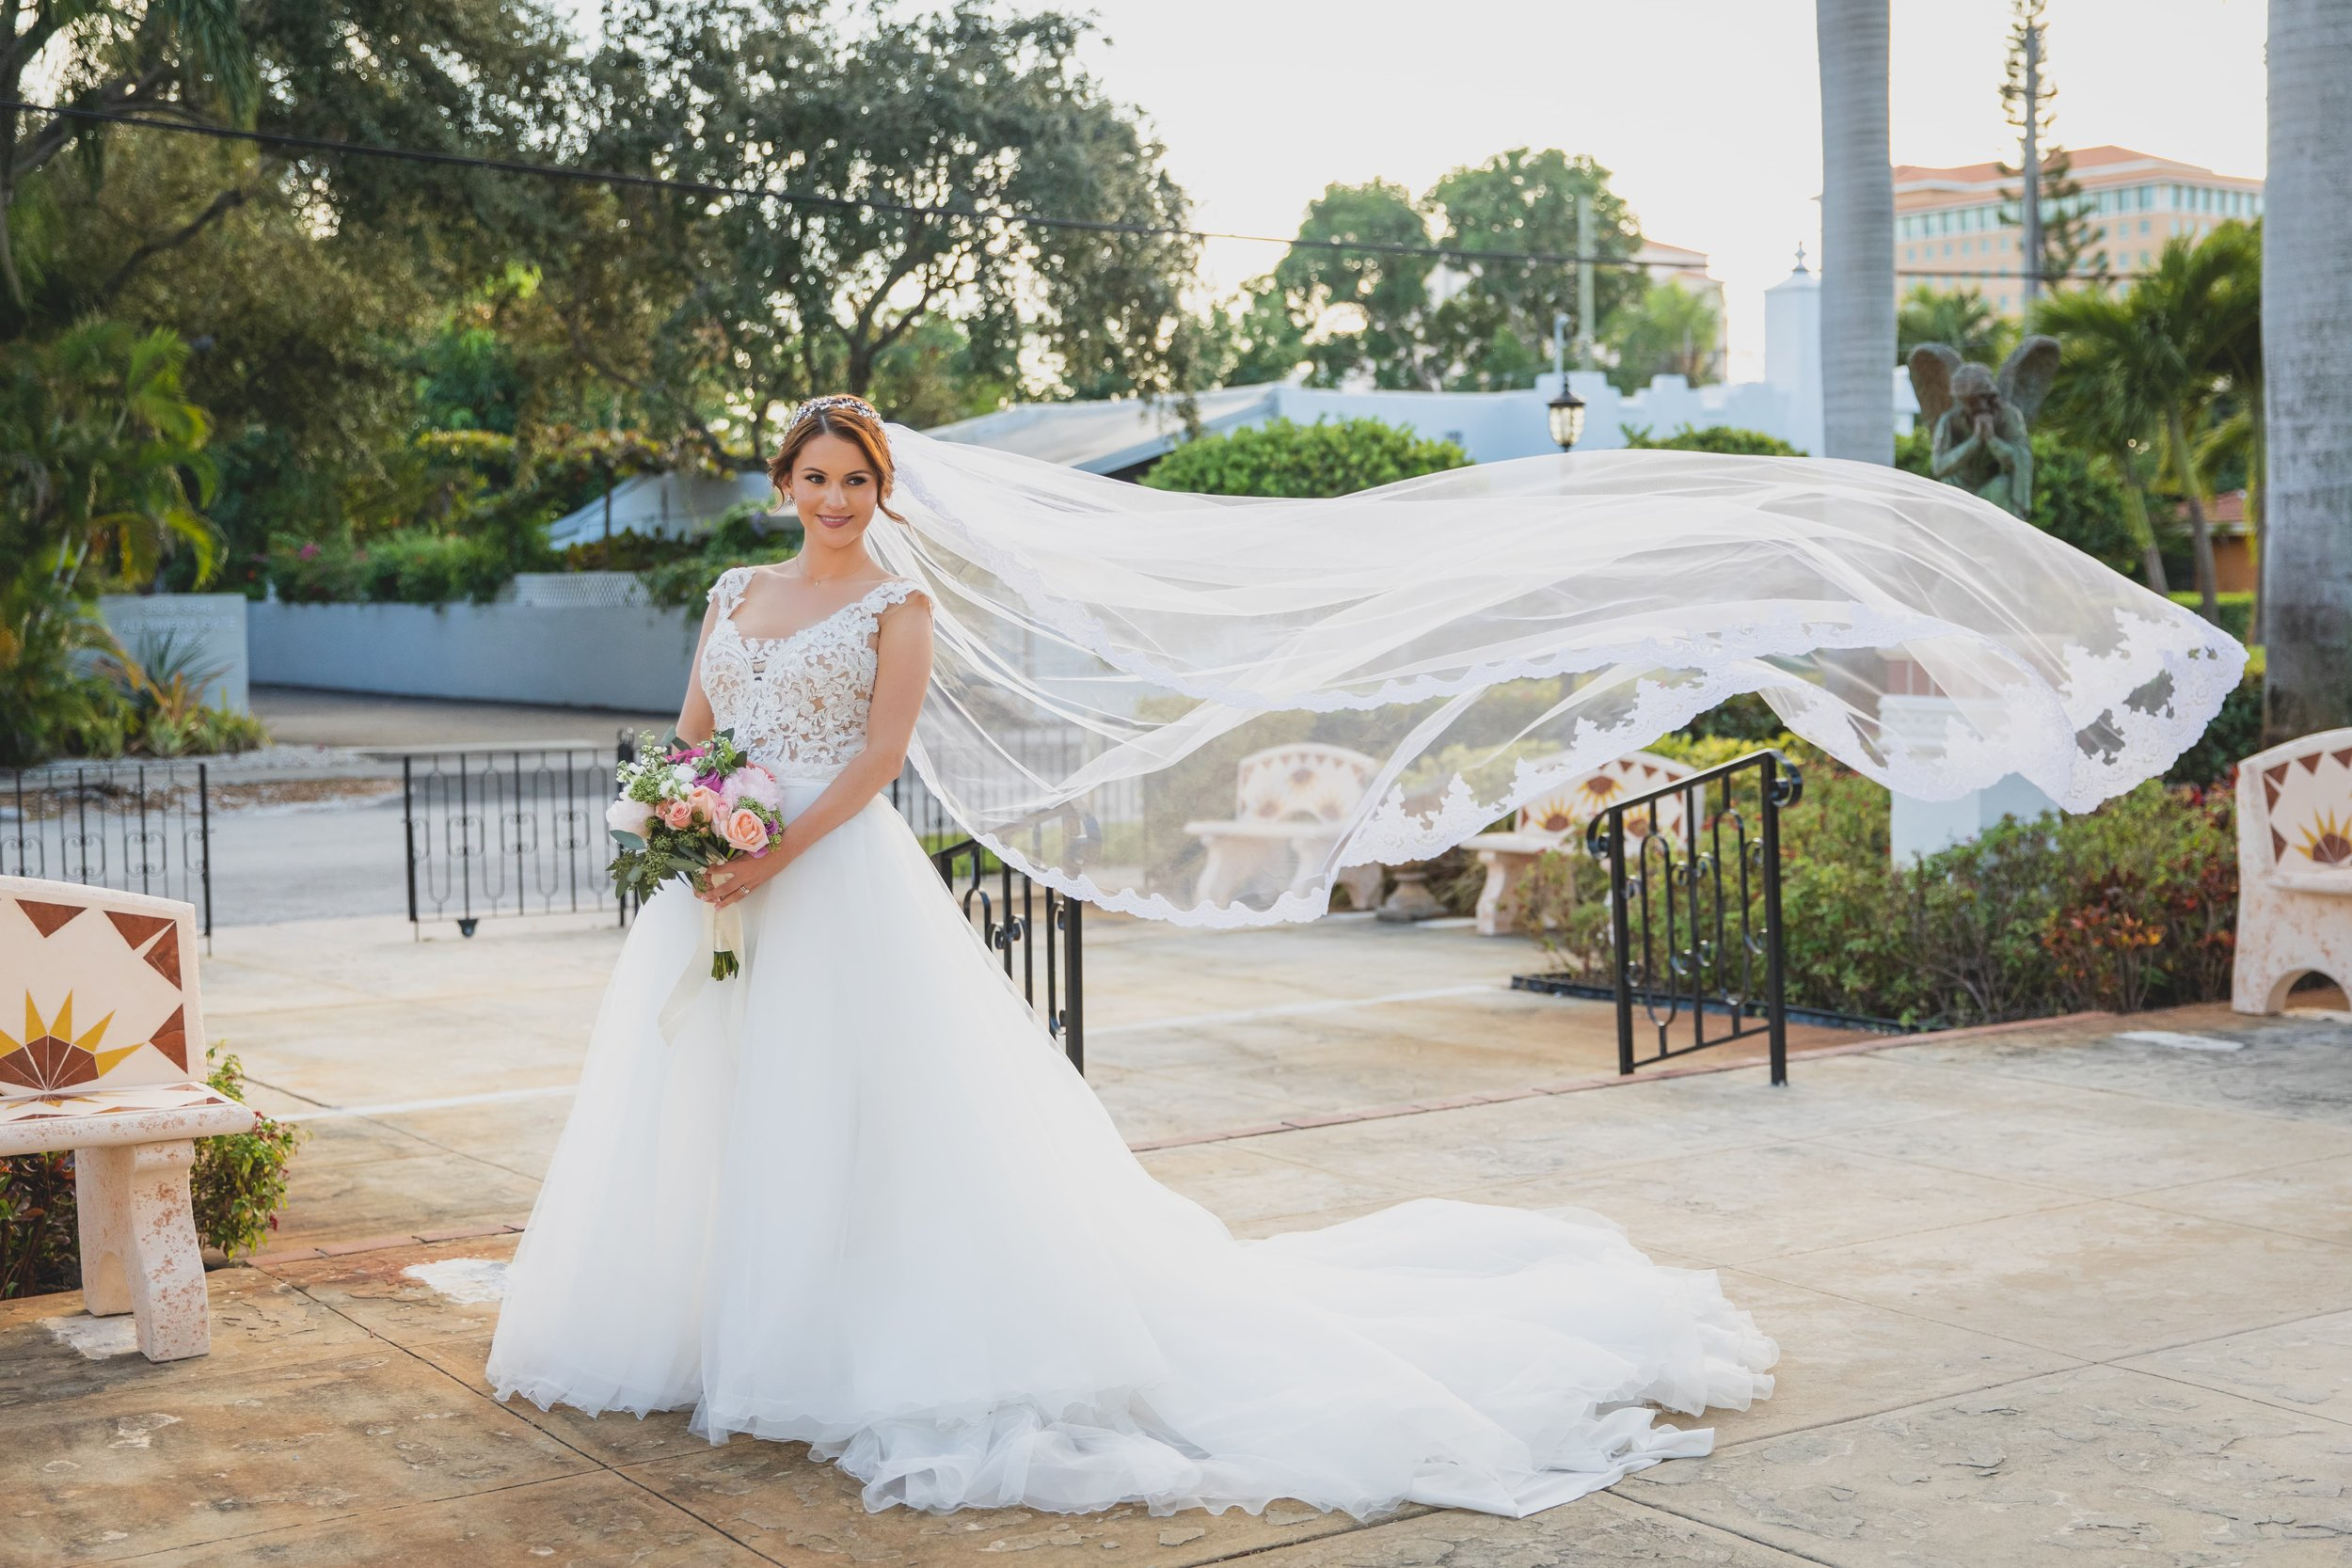 A bride in a flowing white dress with her veil flowing behind her in the wind.